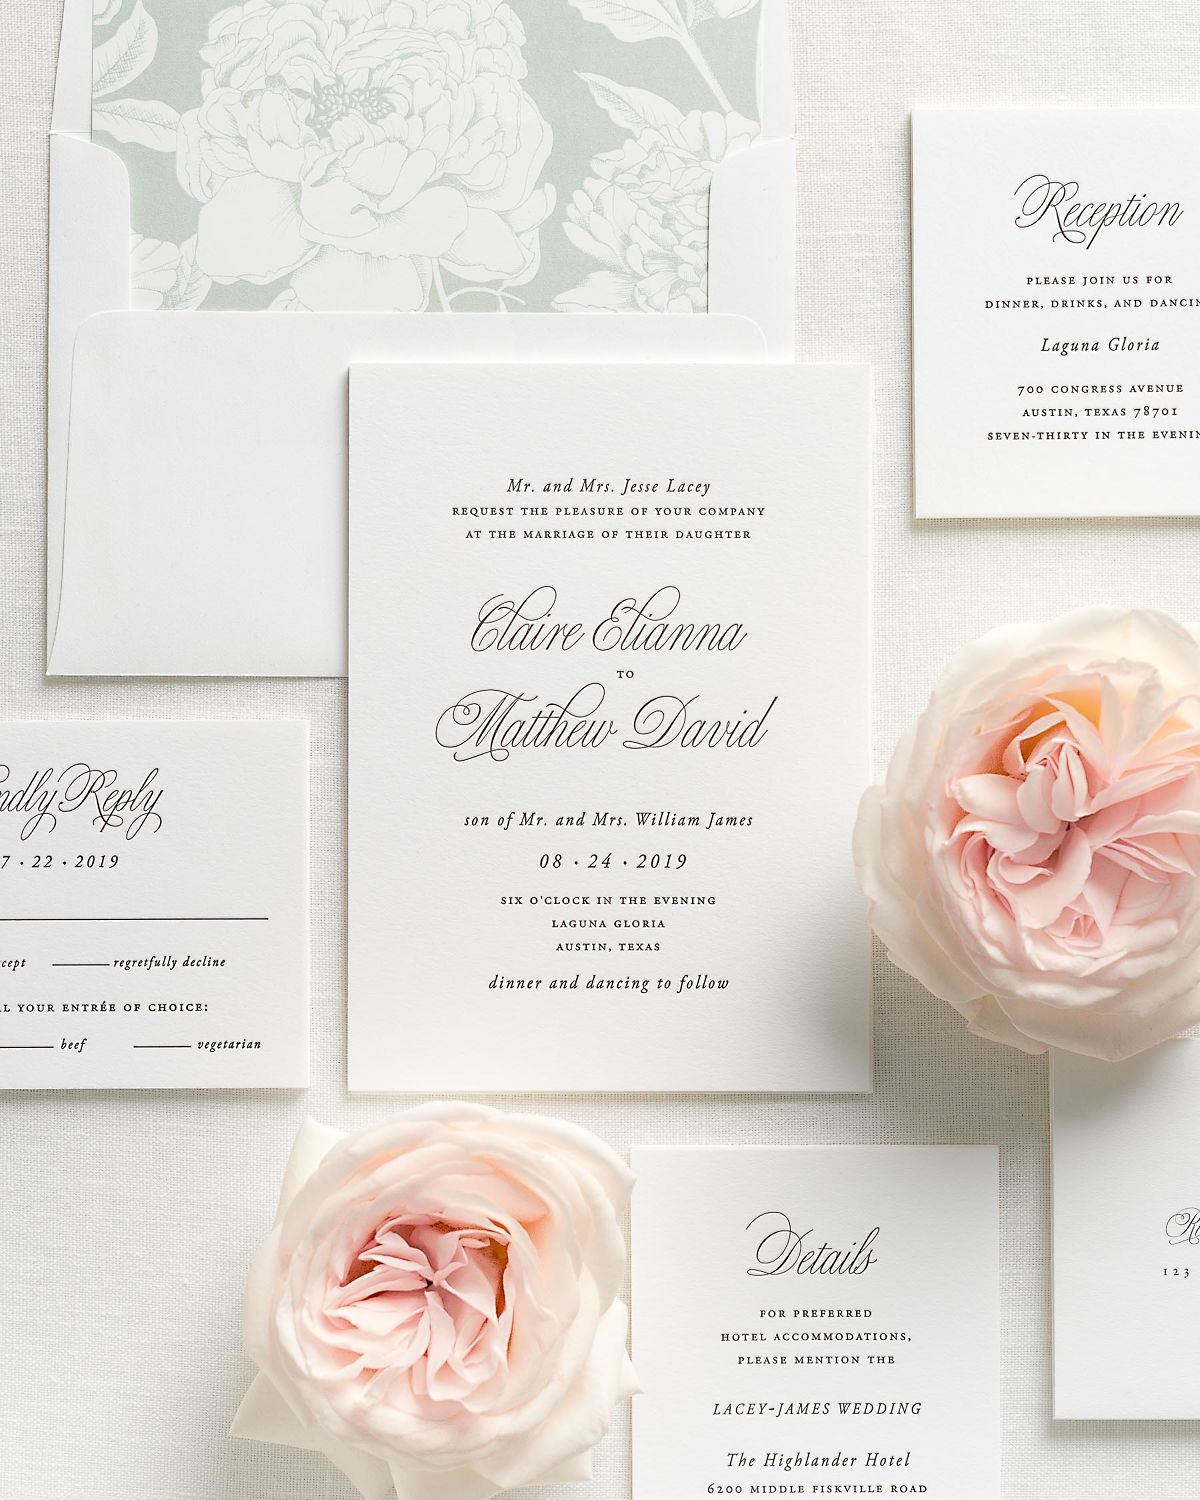 Letterpress Wedding Invitations with Sea Salt Blooms Envelope Liner and Matching Accessories